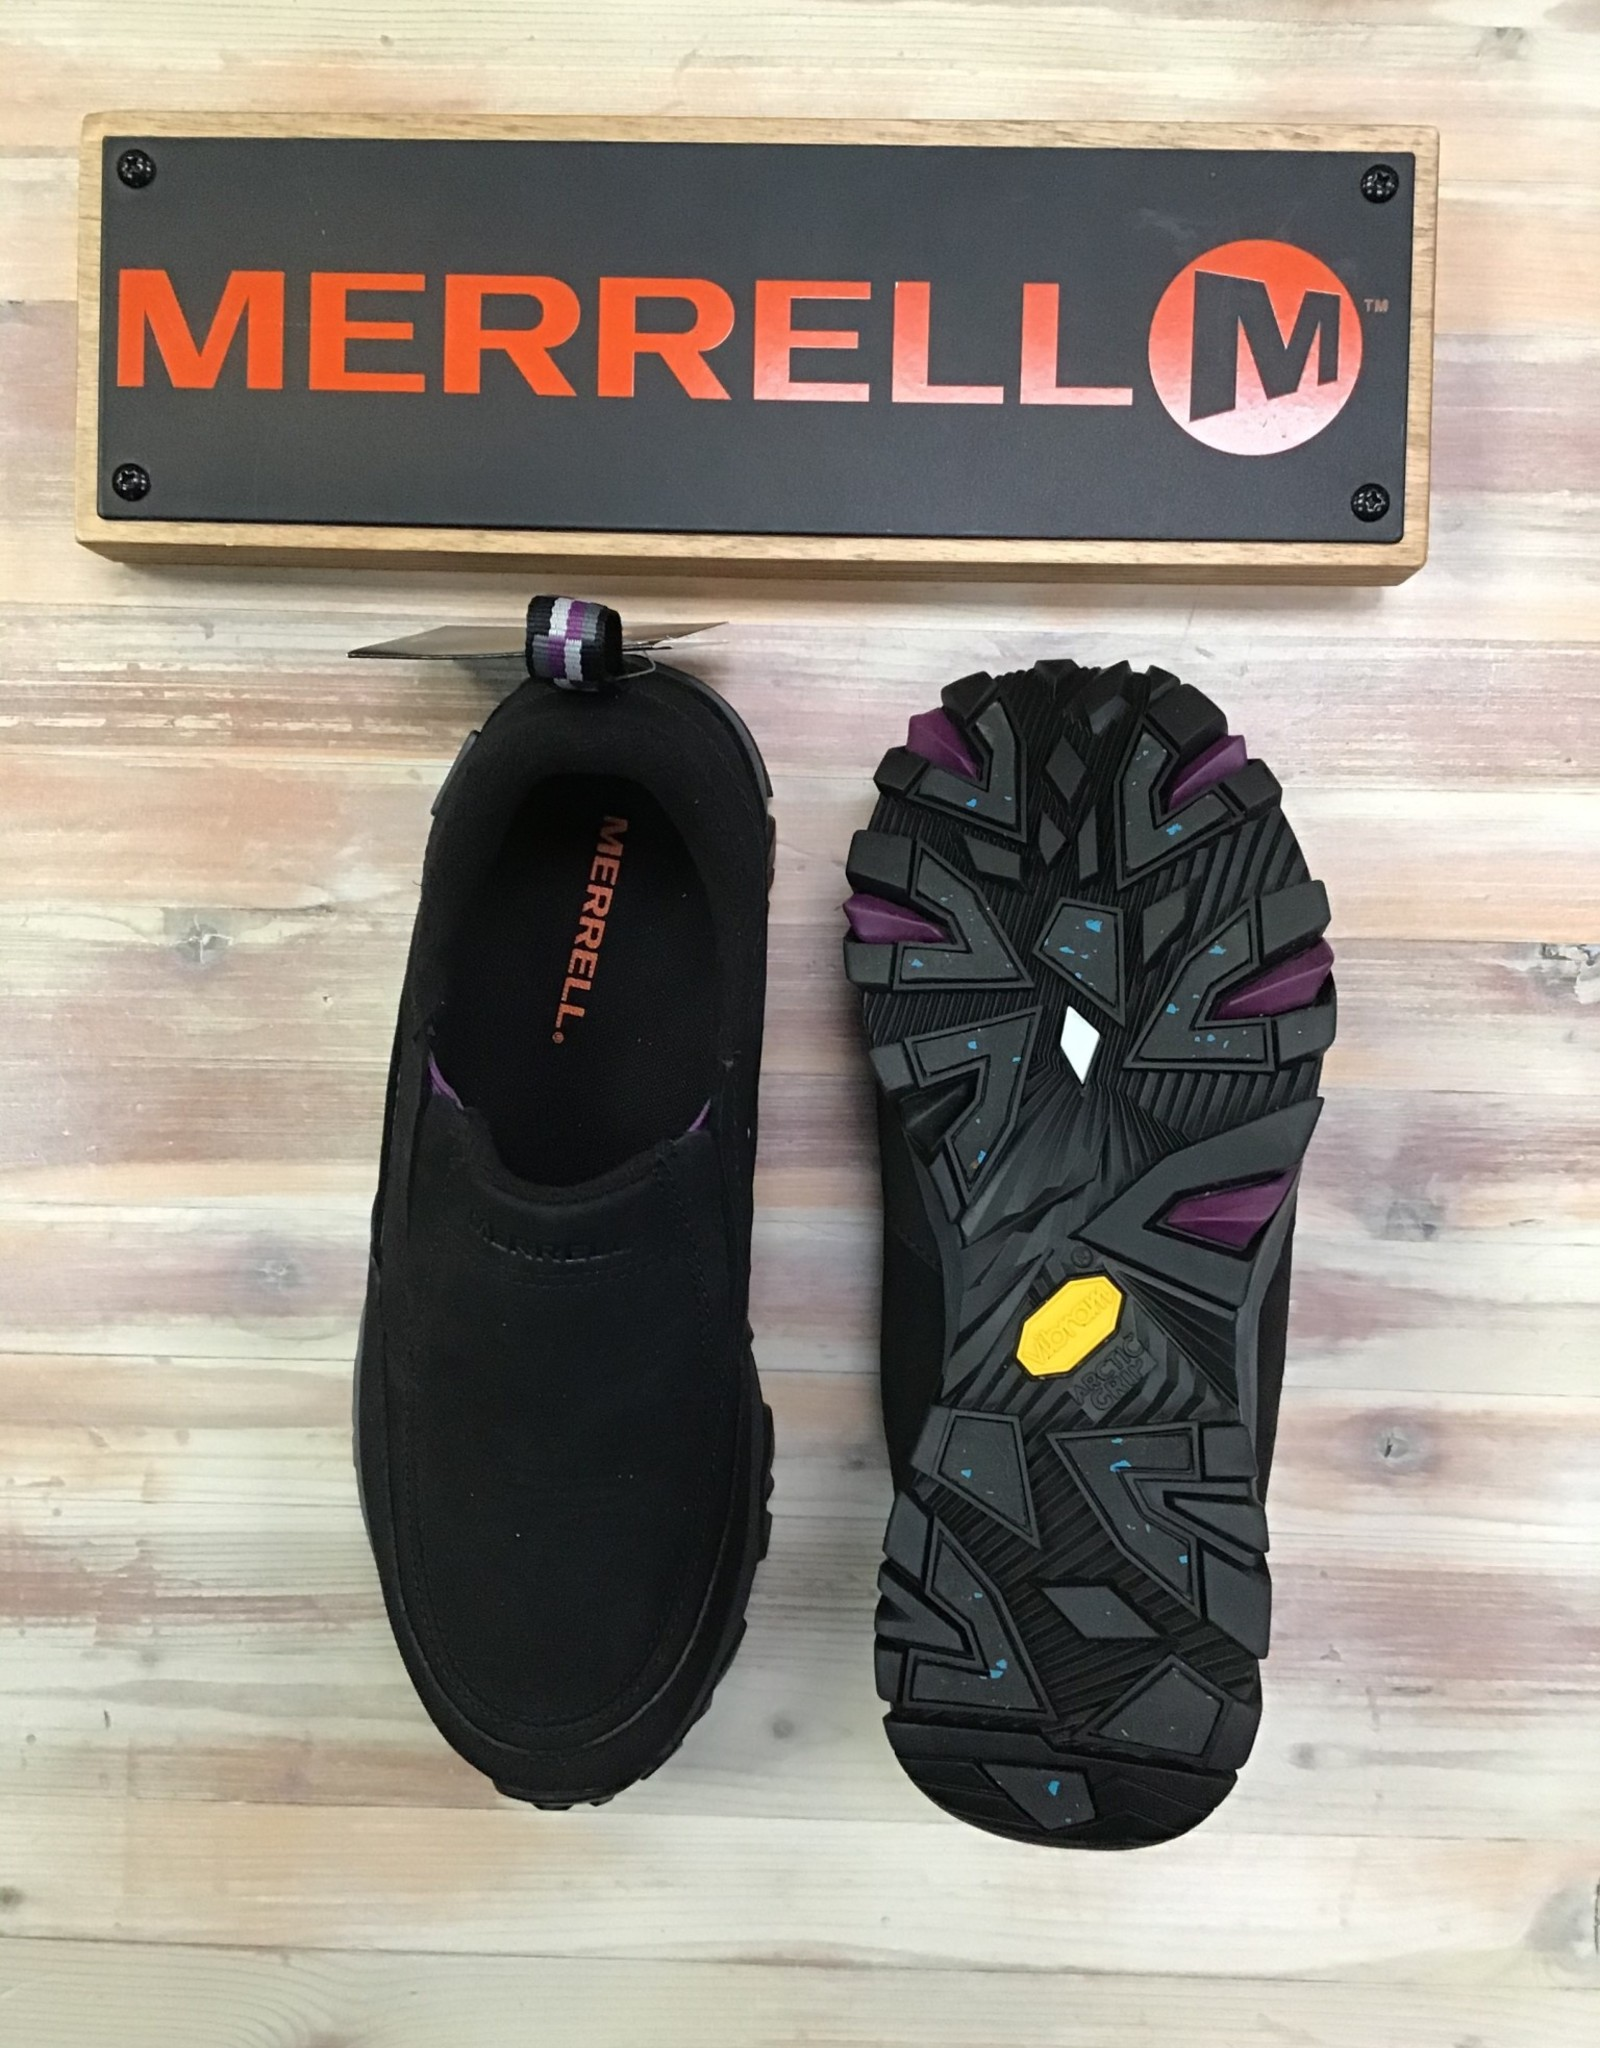 Merrell Merrell Coldpack Ice + Moc WP Ladies'